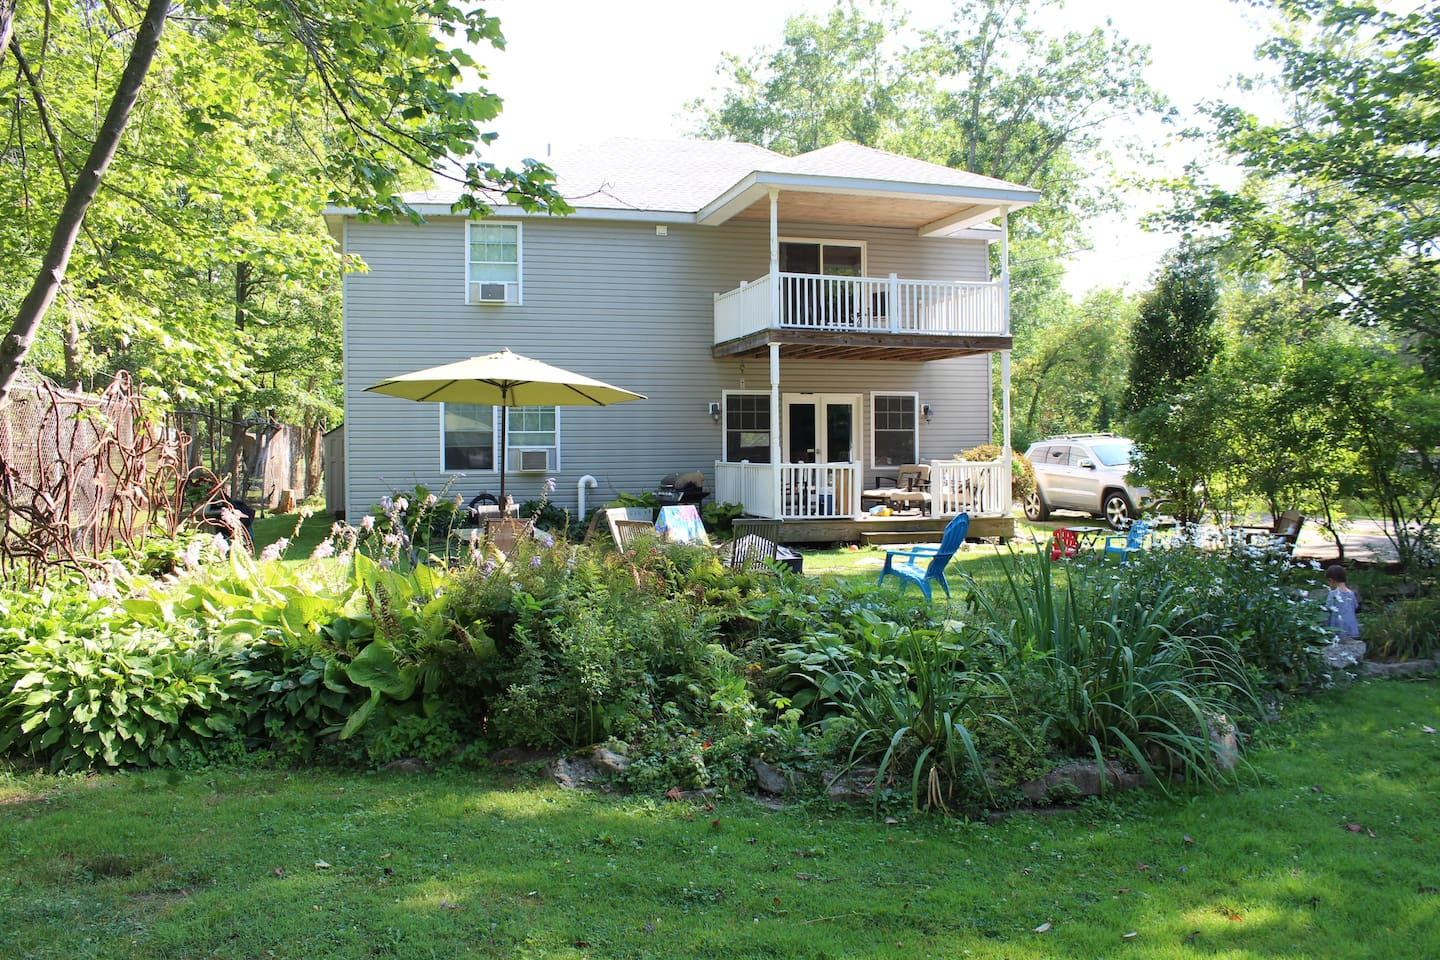 Bemus Point Rental - The best of both worlds in Bemus Point!  Walking Distance to restaurants, night-life and shopping but also located on a private, quiet path with lake access and a private dock.